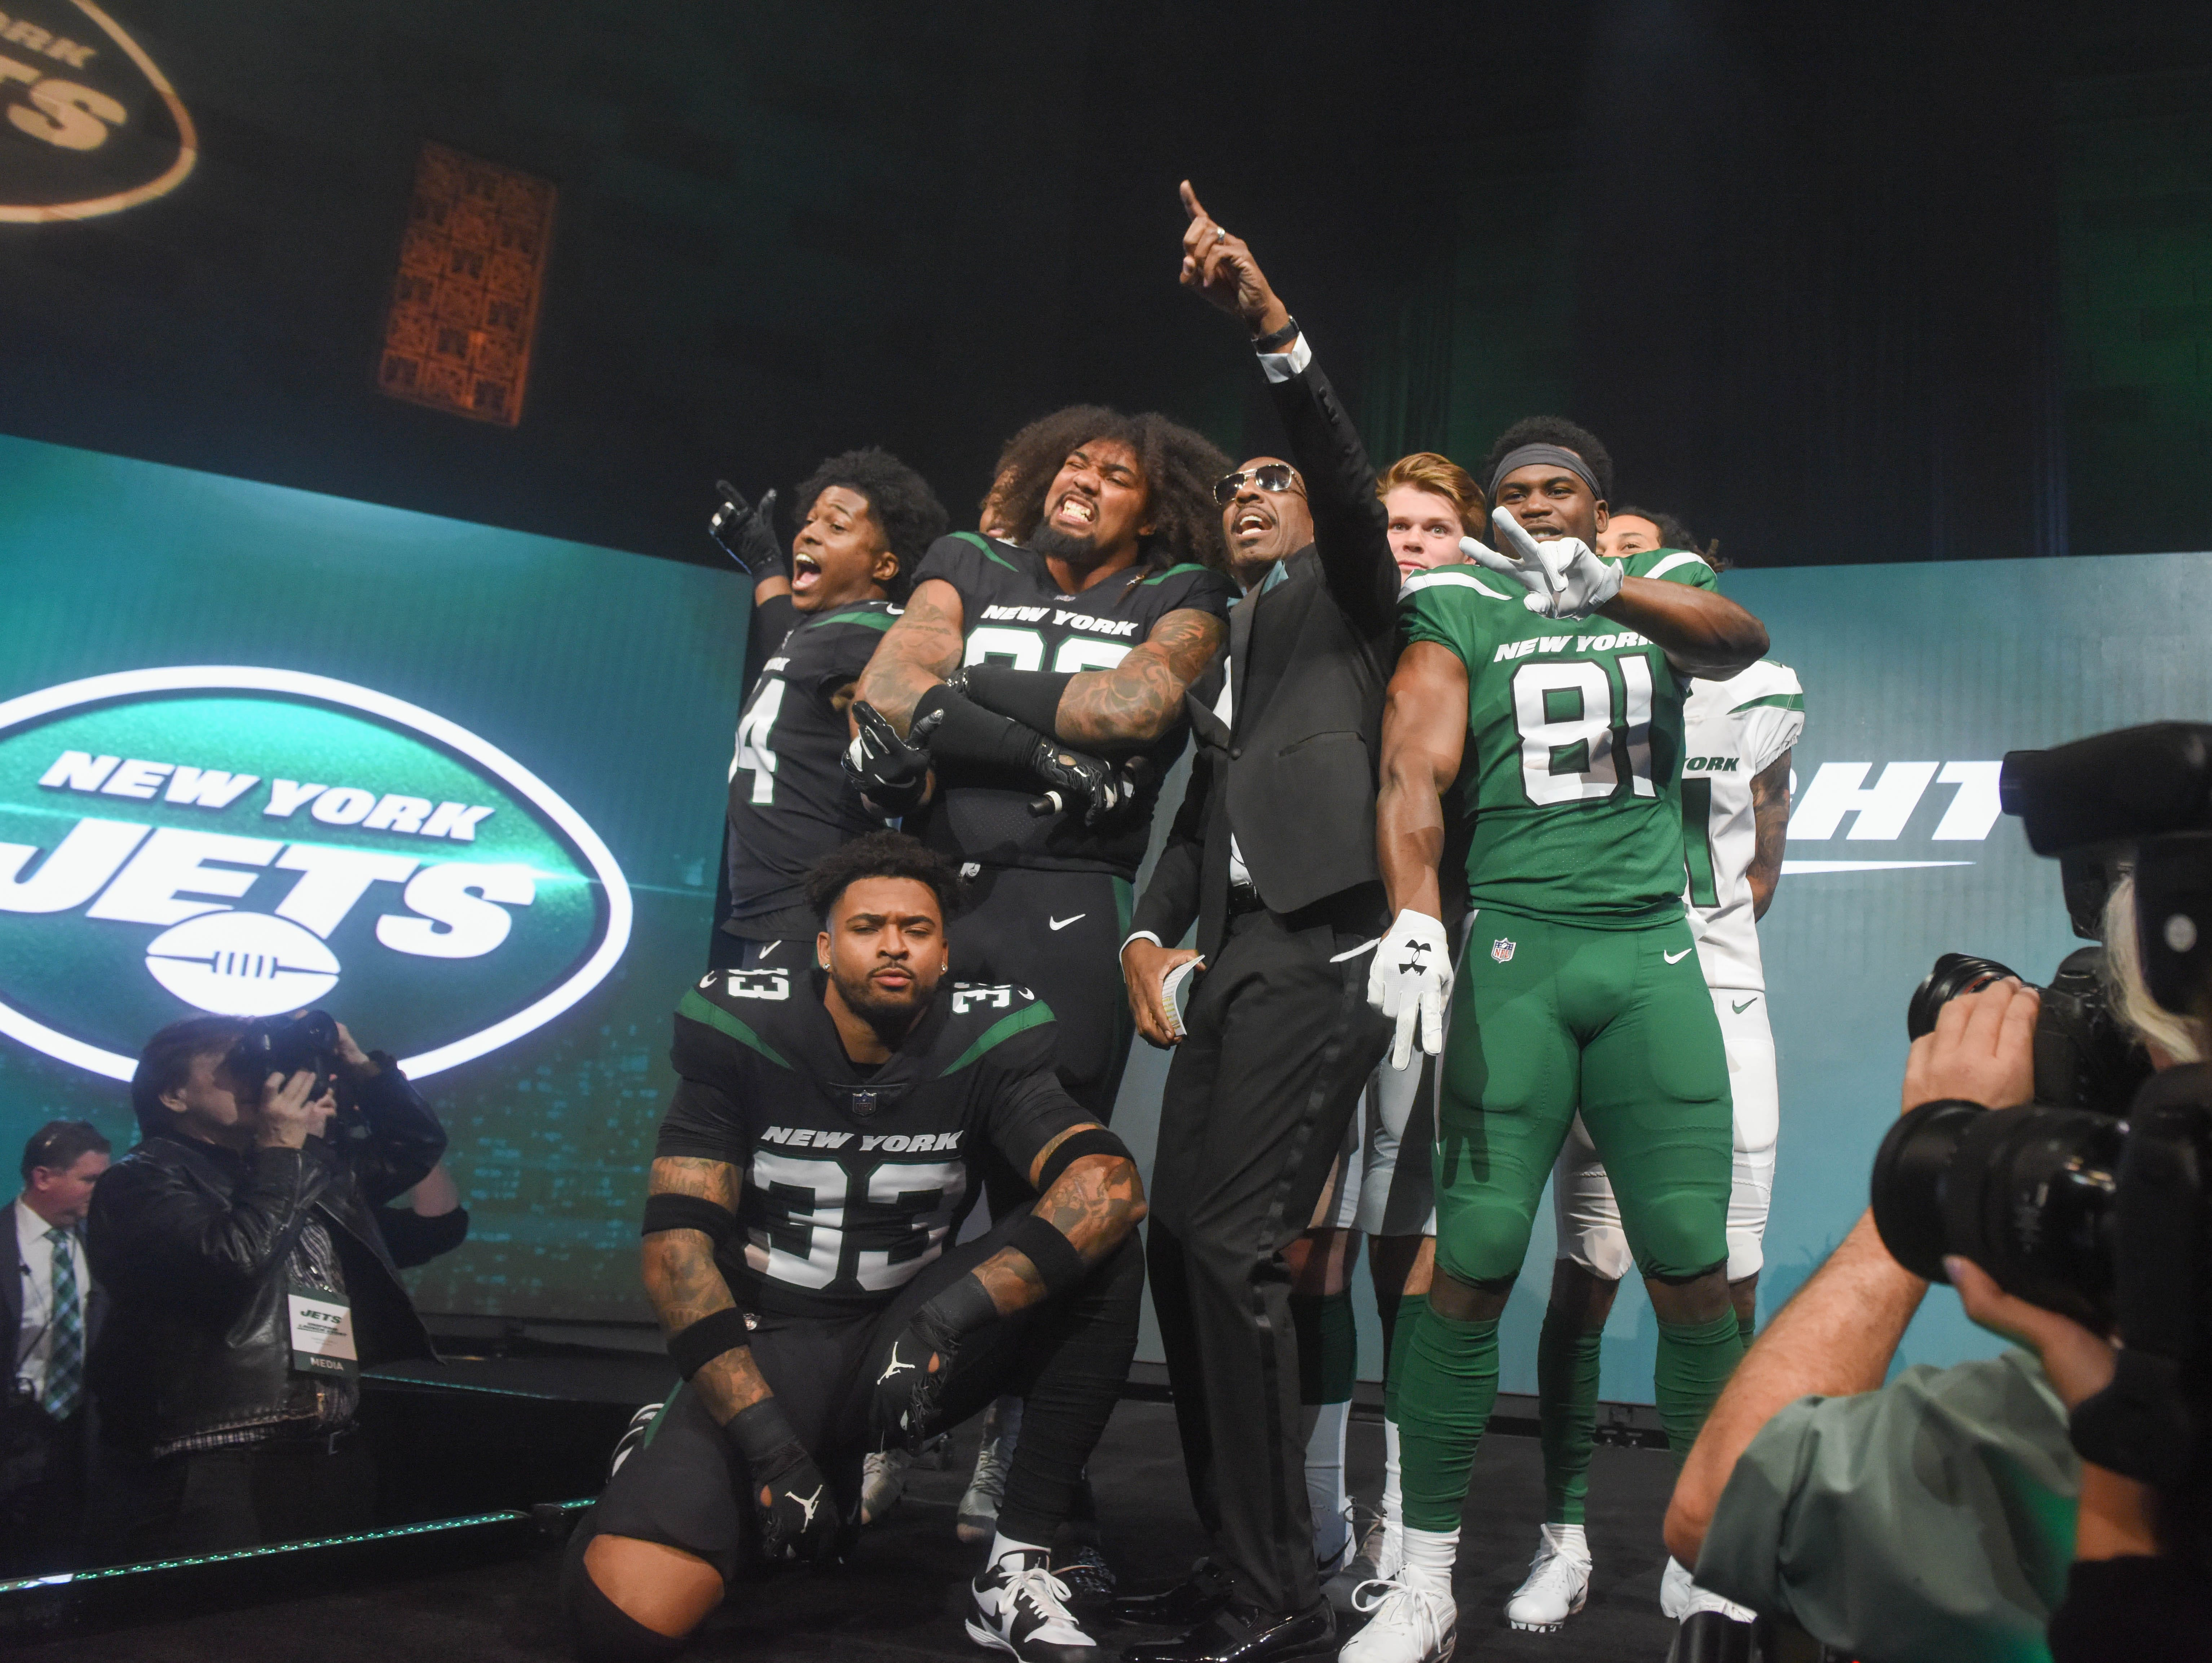 The NY Jets unveiled their new football uniforms with an event hosted by JB Smoove at Gotham Hall in New York. 04/05/2019